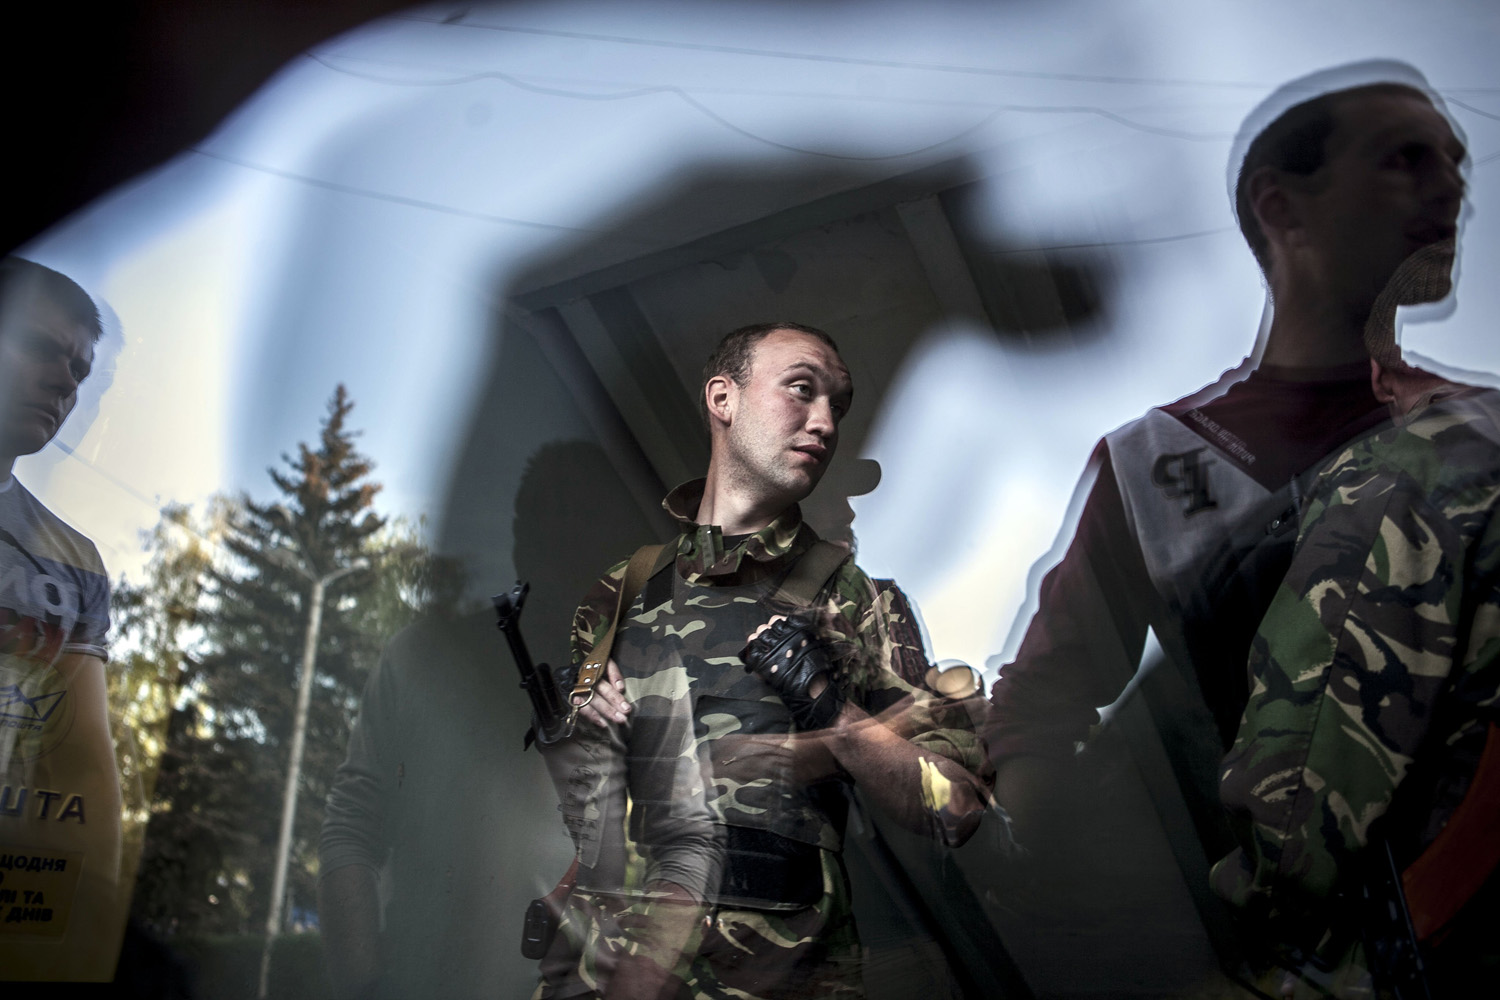 May 11, 2014. Ukranian militia tried to stop the referendum voting briefly taking the City Hall,  where unarmed pro Russian civilians were gathering, in the Eastern Ukranian town of Krasnoarmisk.